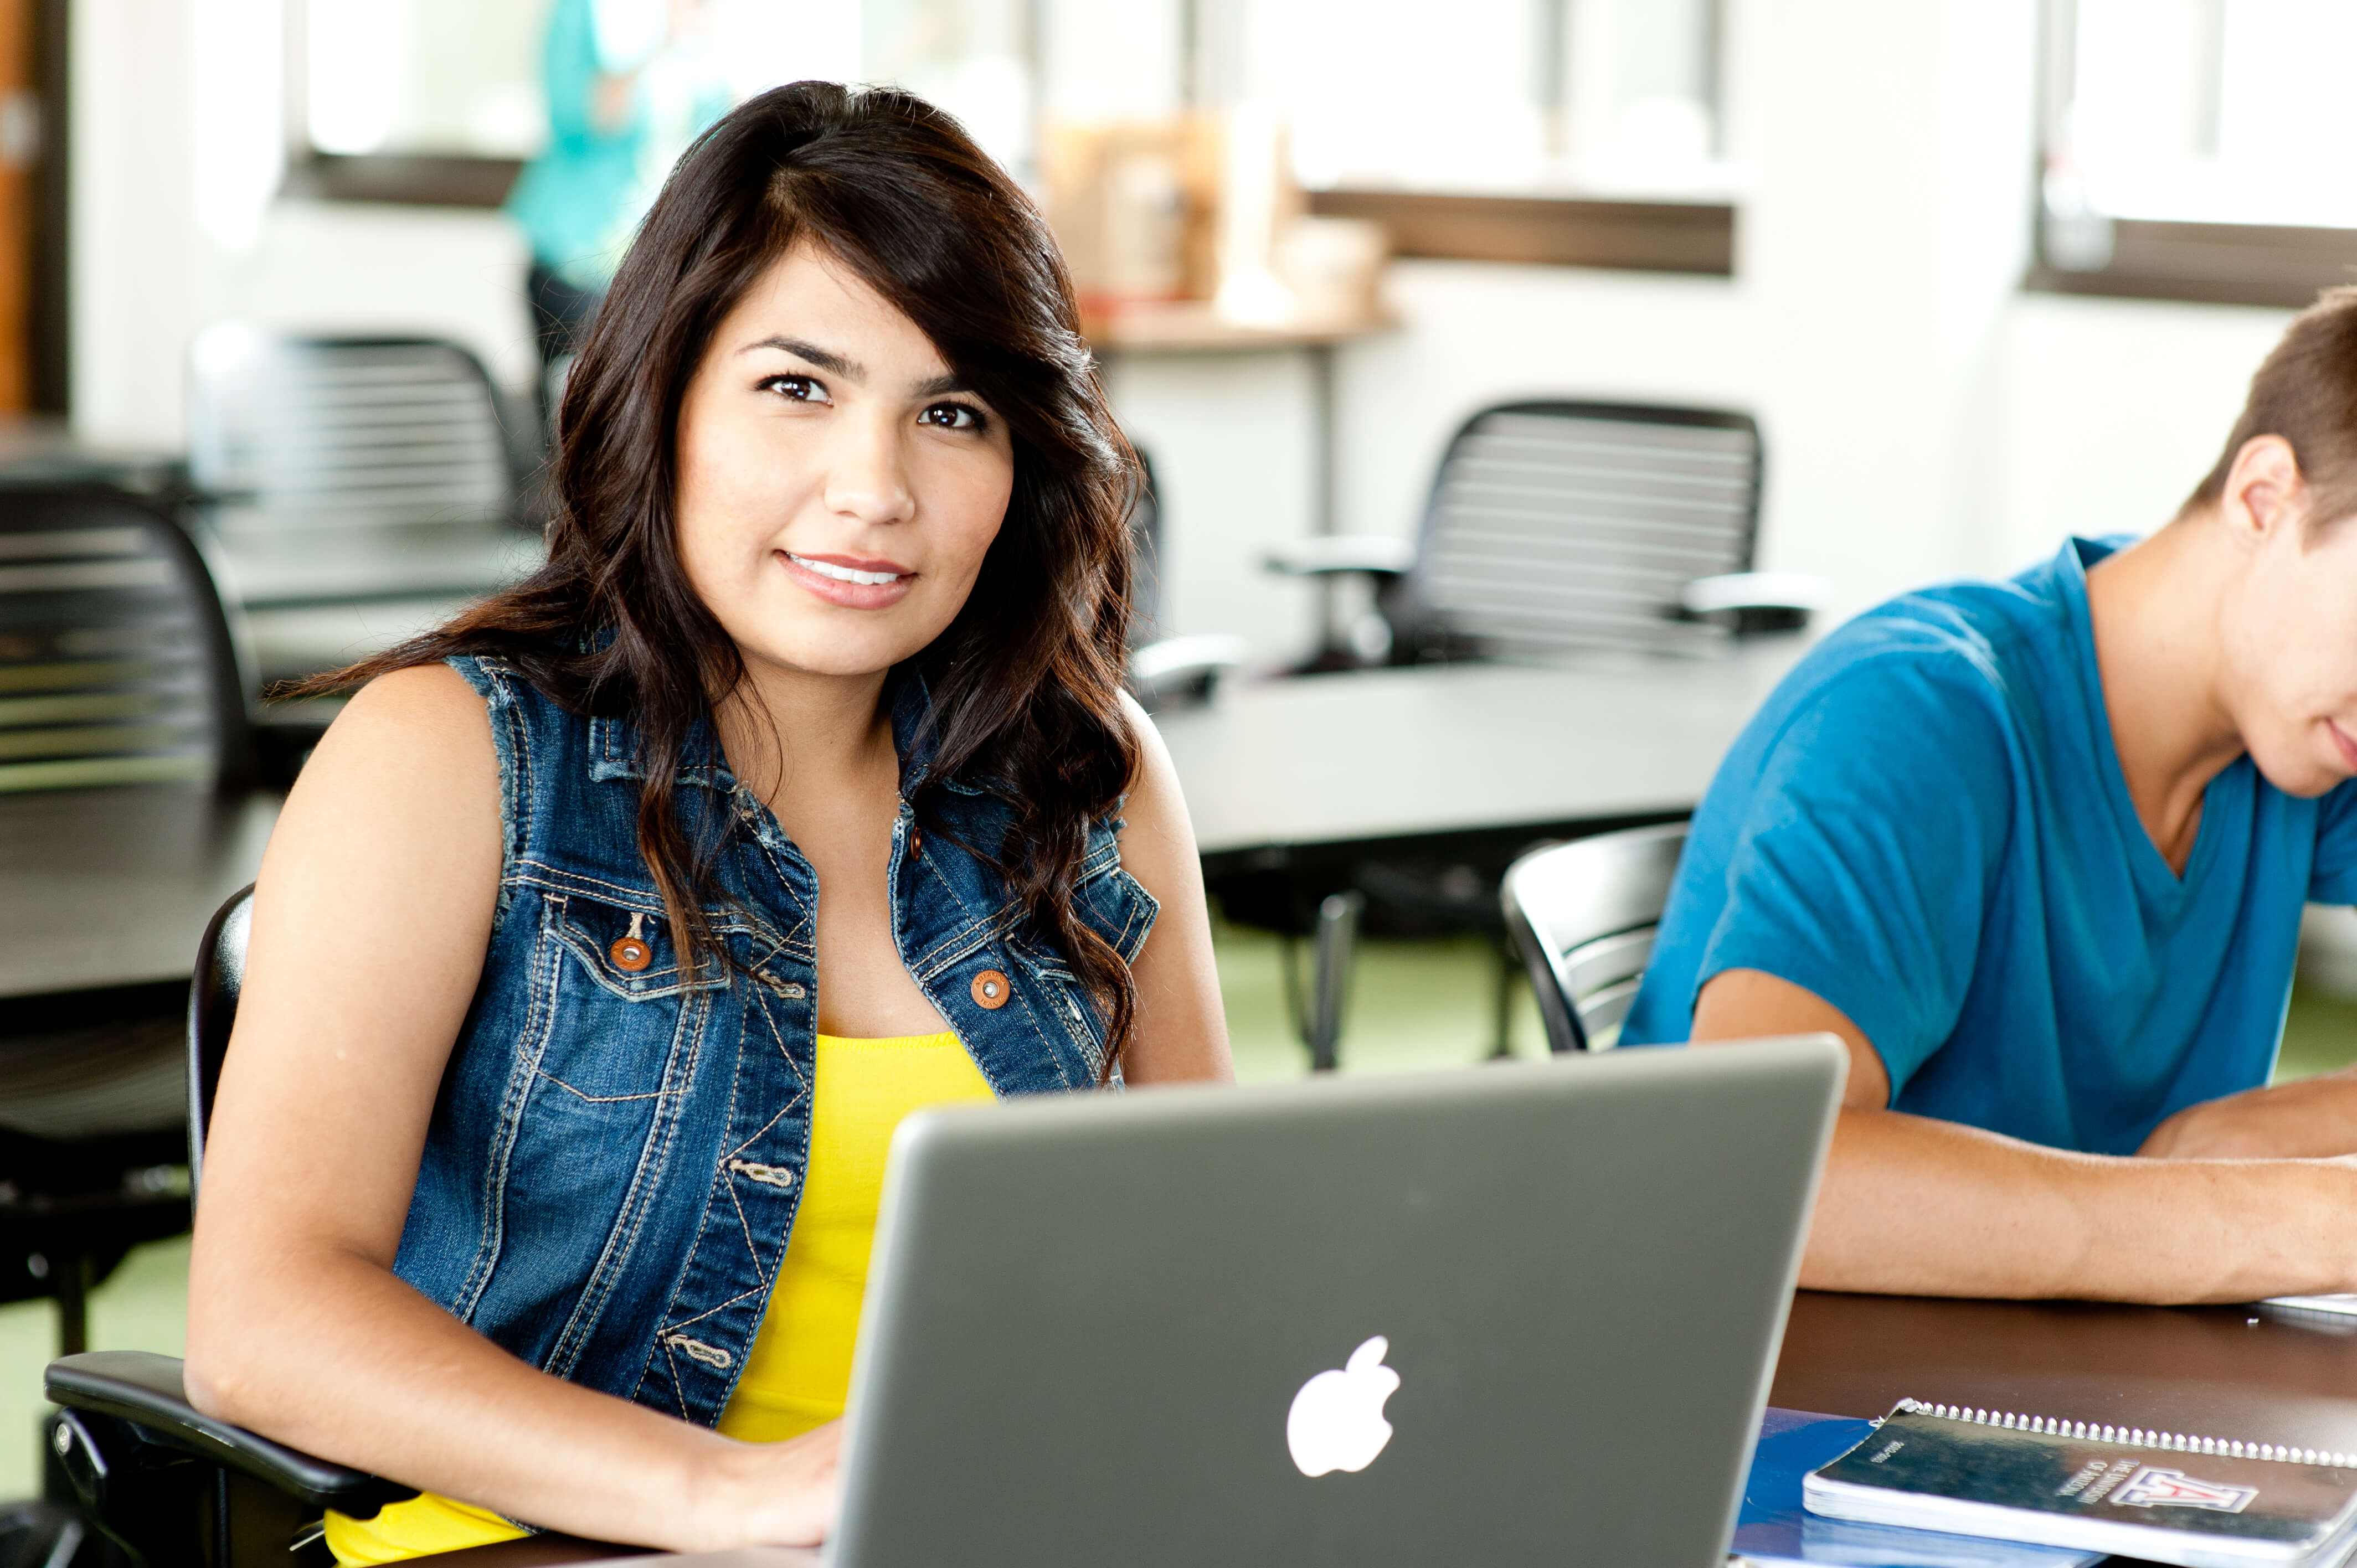 close-up of young woman sitting on front of laptop smiling